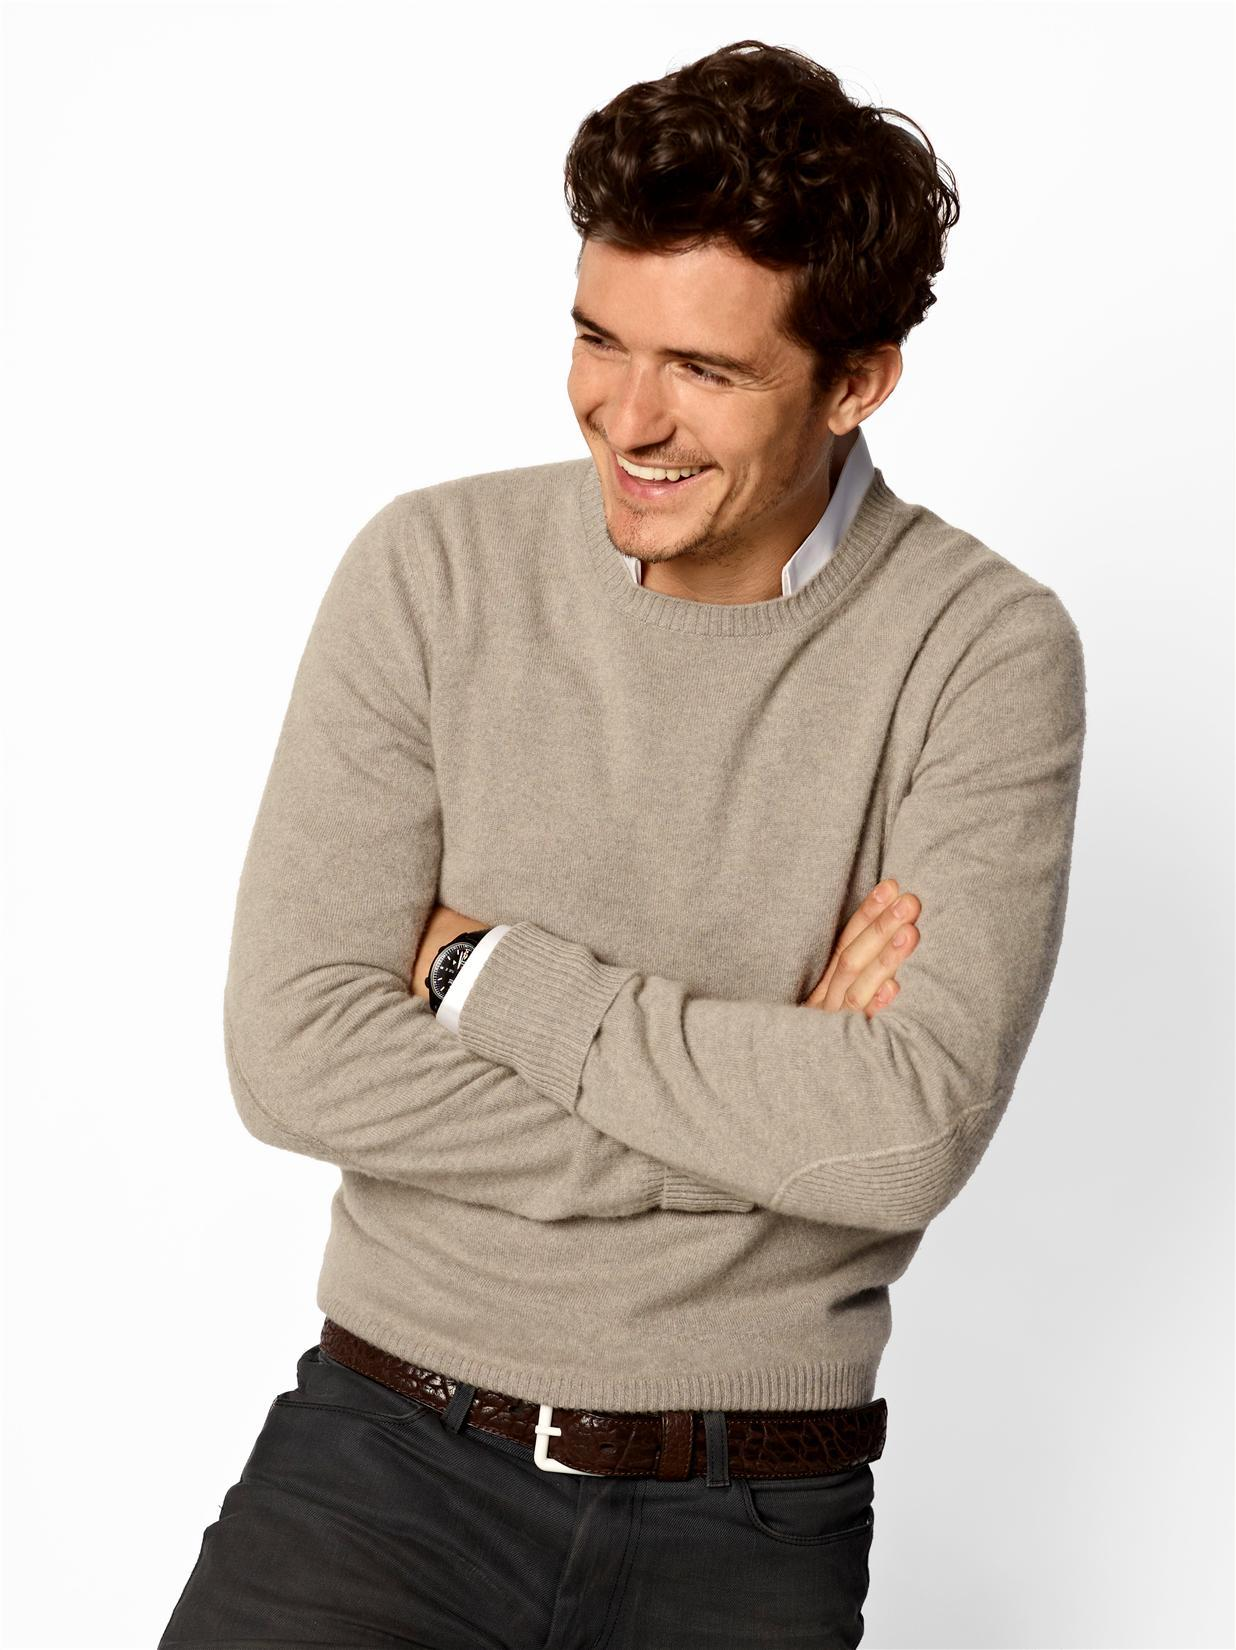 OrlandoBloom3.jpg